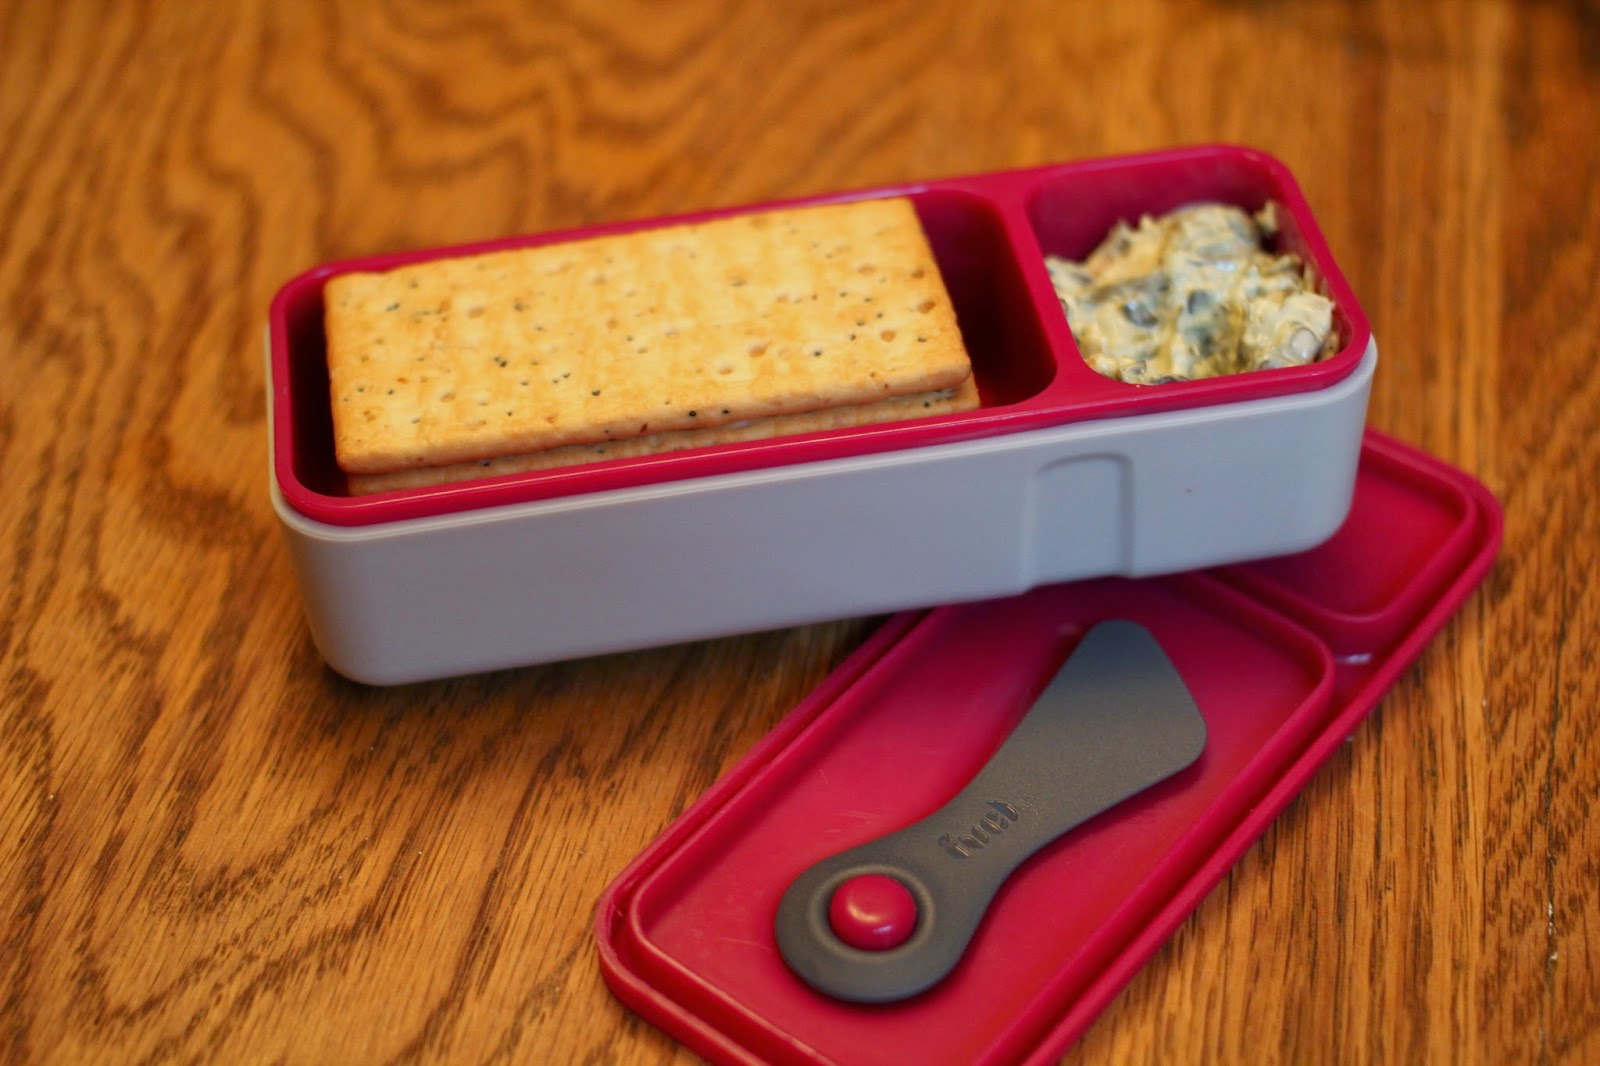 school lunch ideas, lunch box ideas, healthy lunch ideas,fuel container, snack ideas